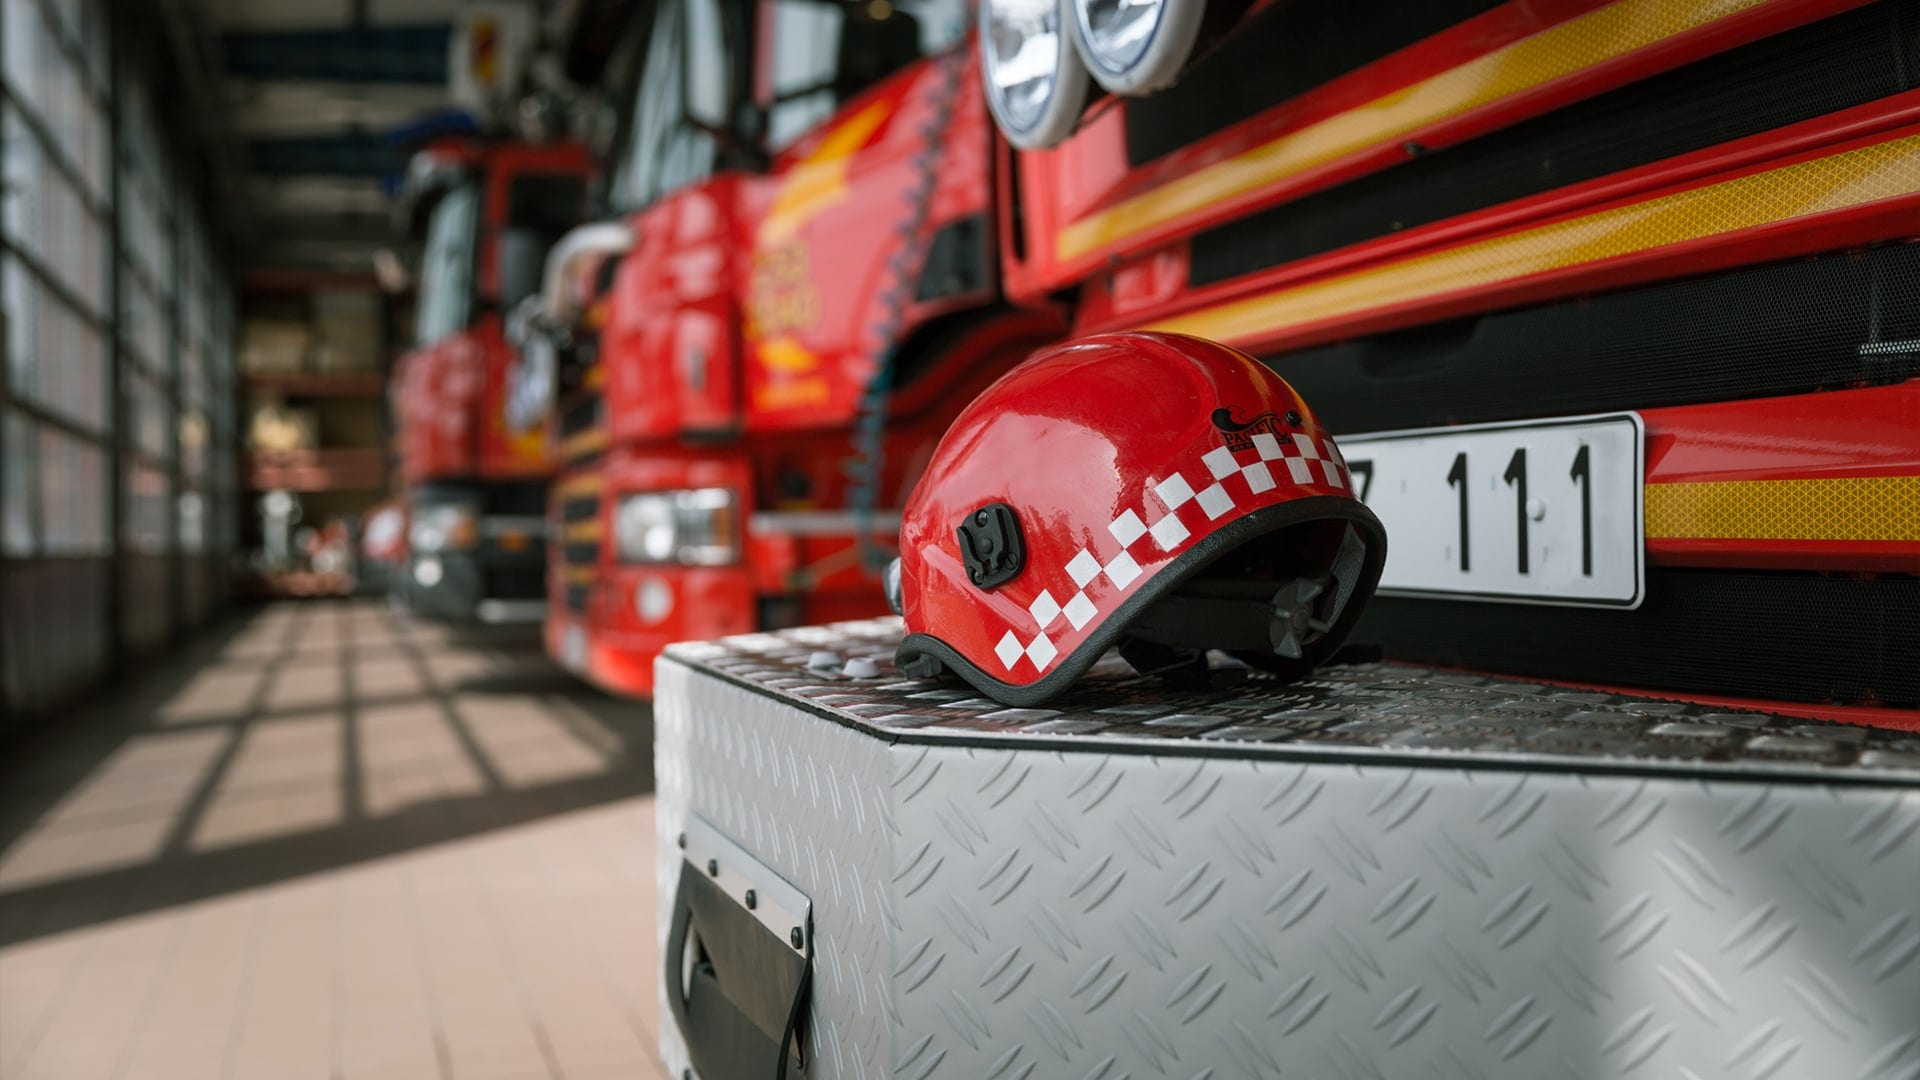 Fire-trucks lined up at a fire brigade